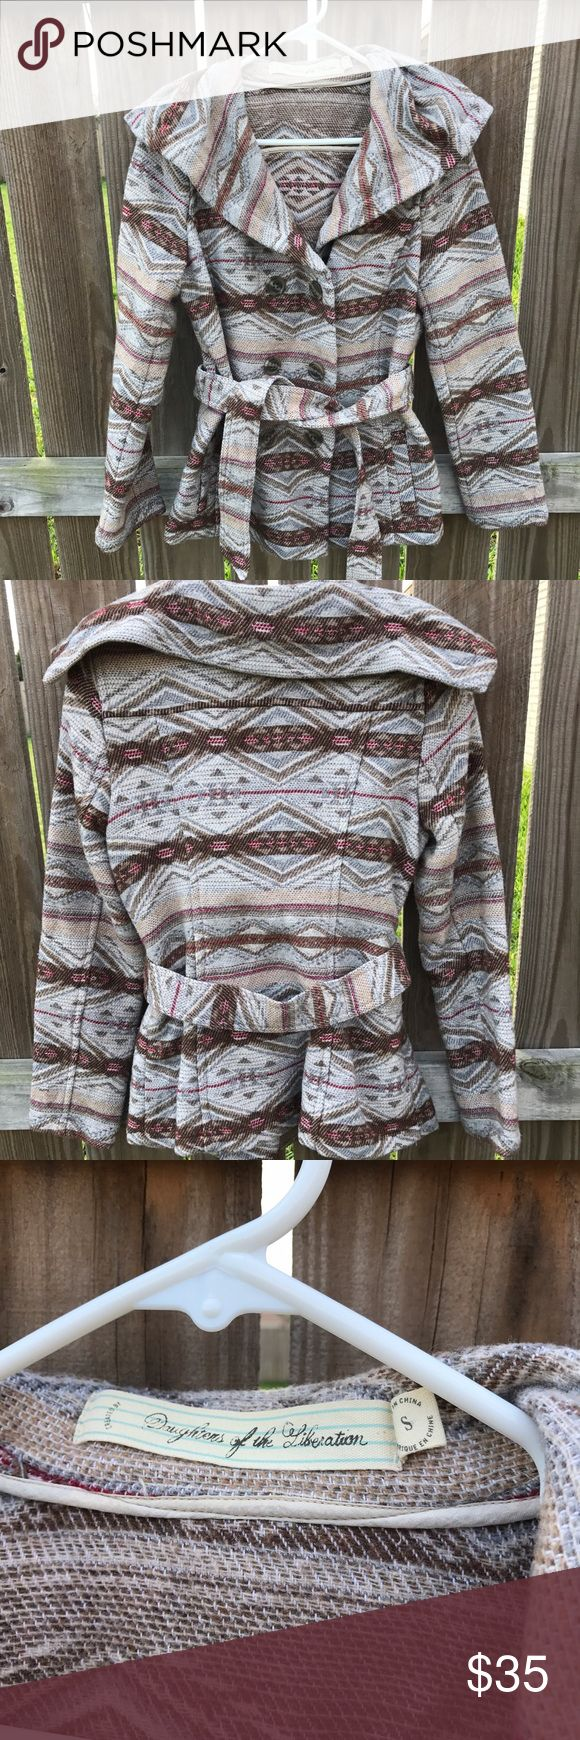 Anthropologie Daughters of the Liberation coat Super cute coat from anthropologie brand: daughters of the liberation dry clean only! Size small come with its belt! Very cozy in good condition Anthropologie Jackets & Coats Pea Coats